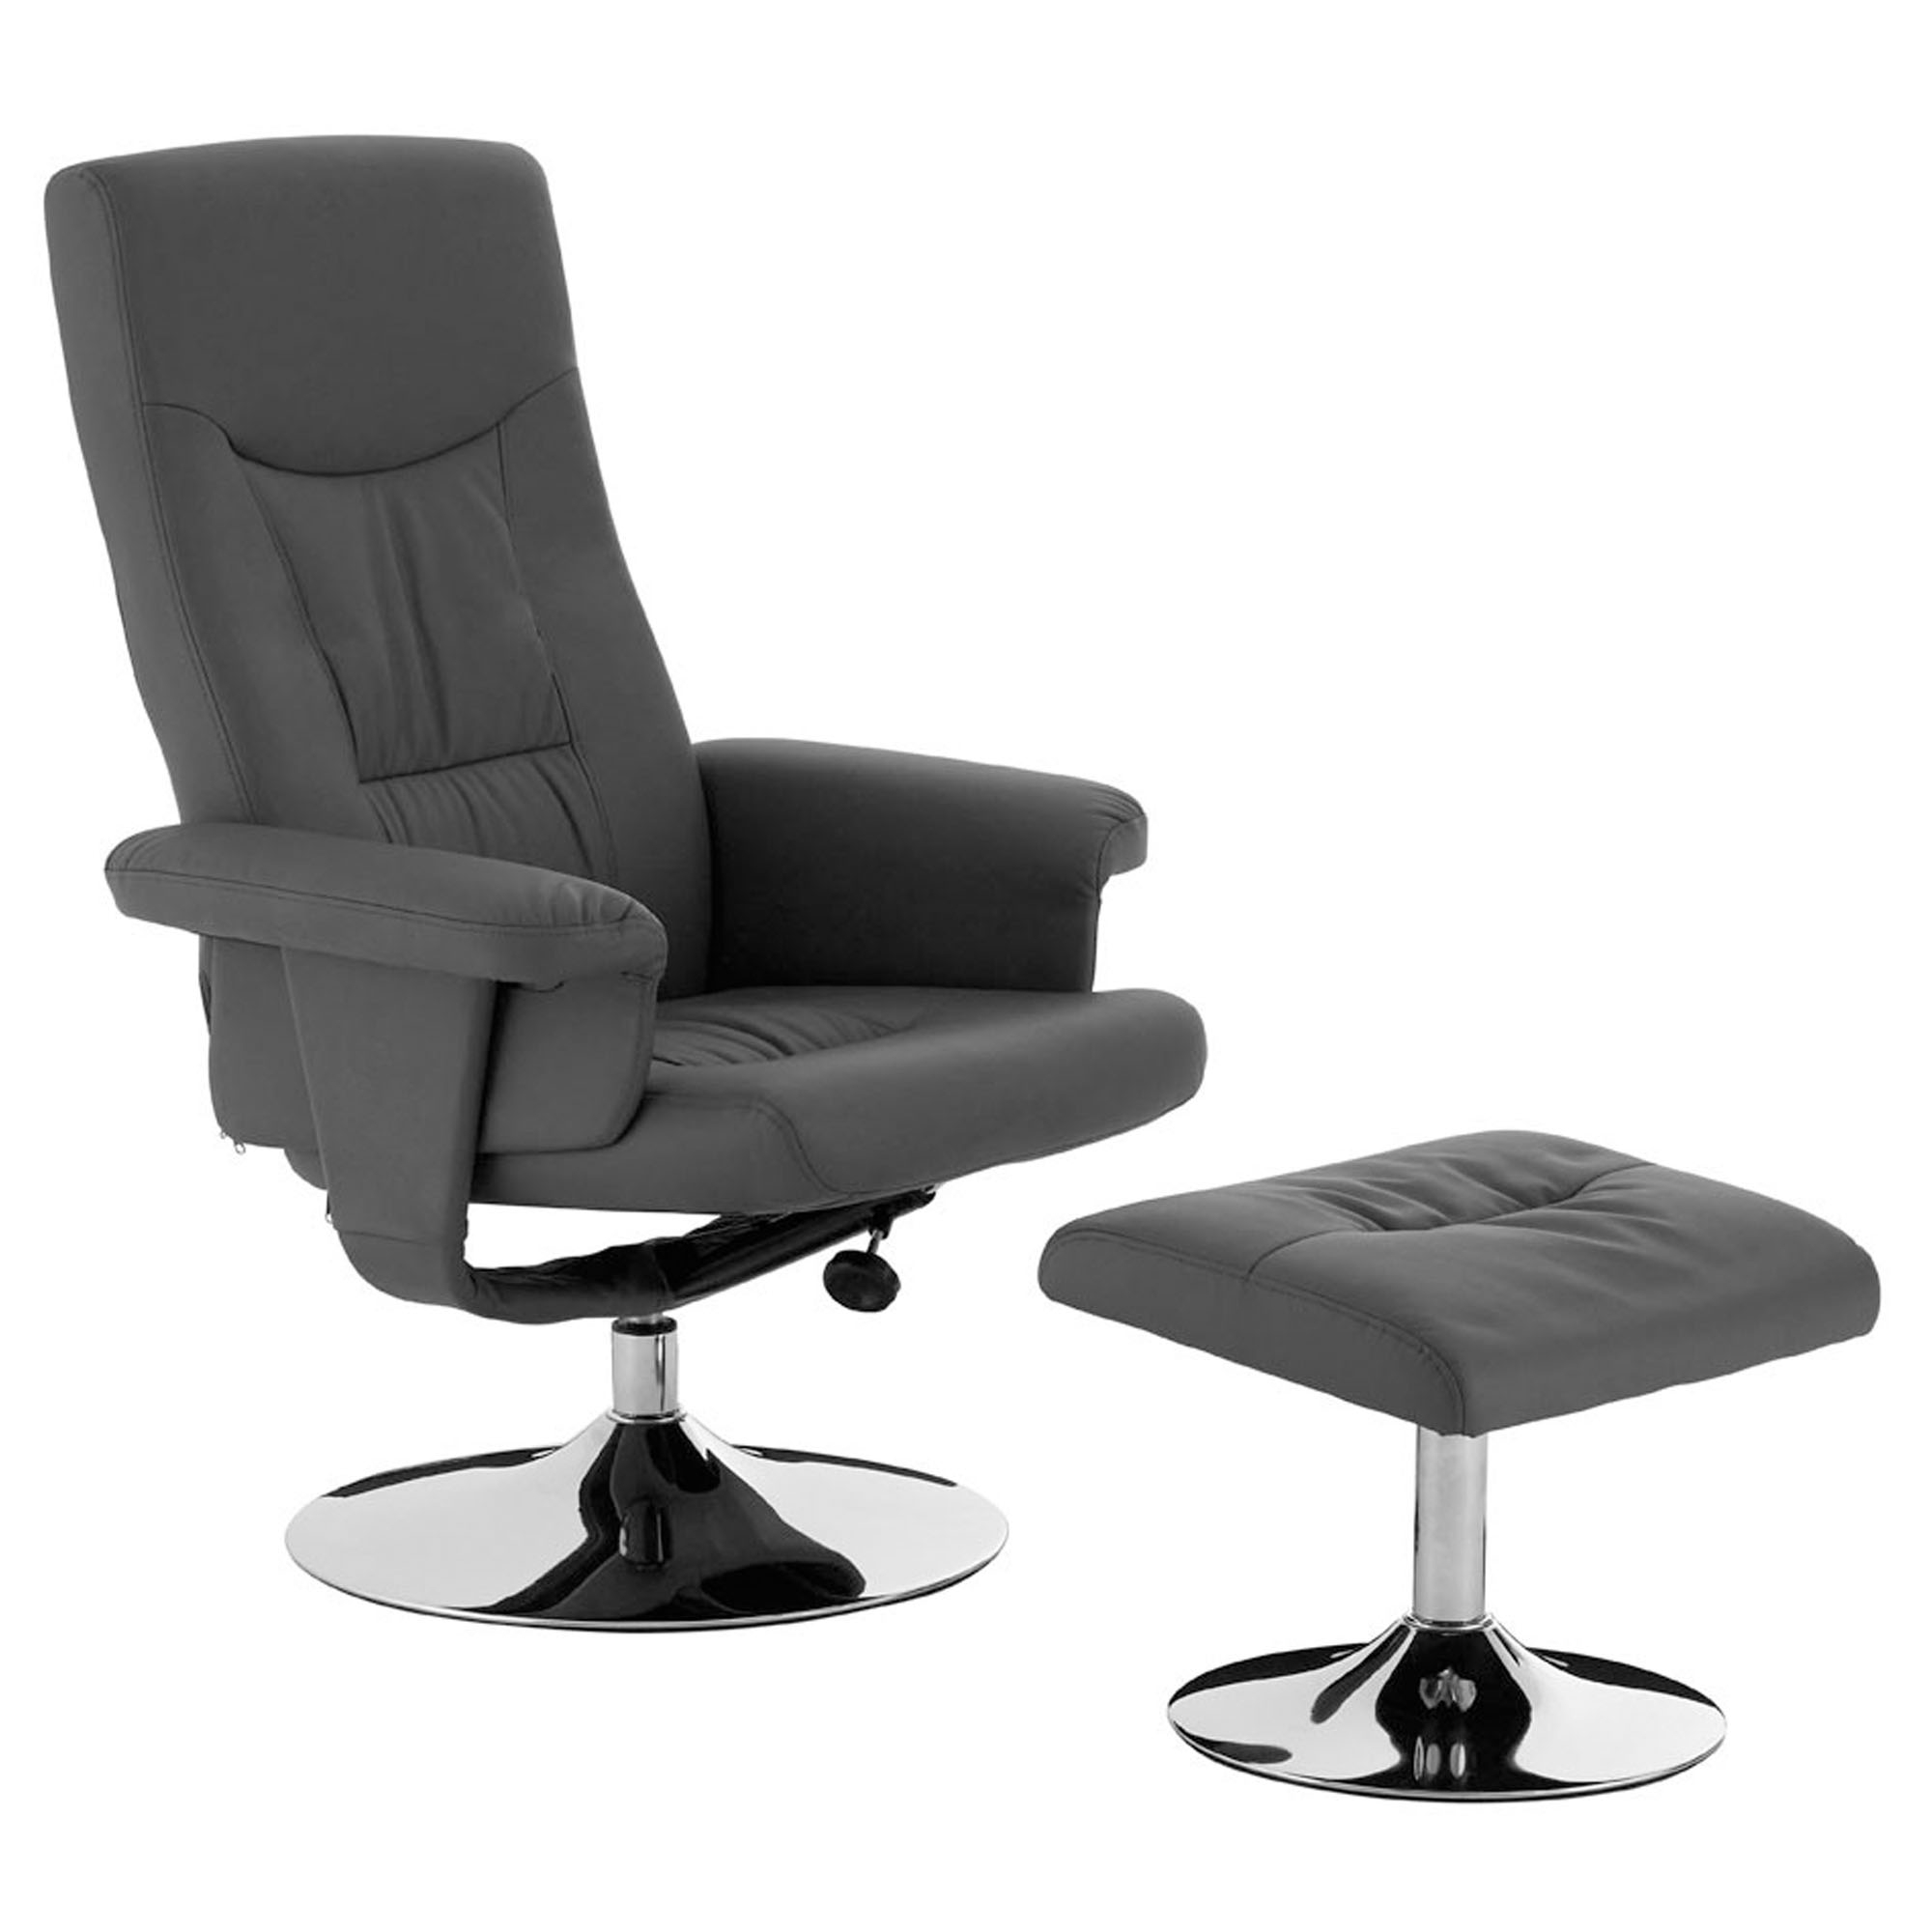 Amazing Modern Recliner Chair With Footstool Dailytribune Chair Design For Home Dailytribuneorg